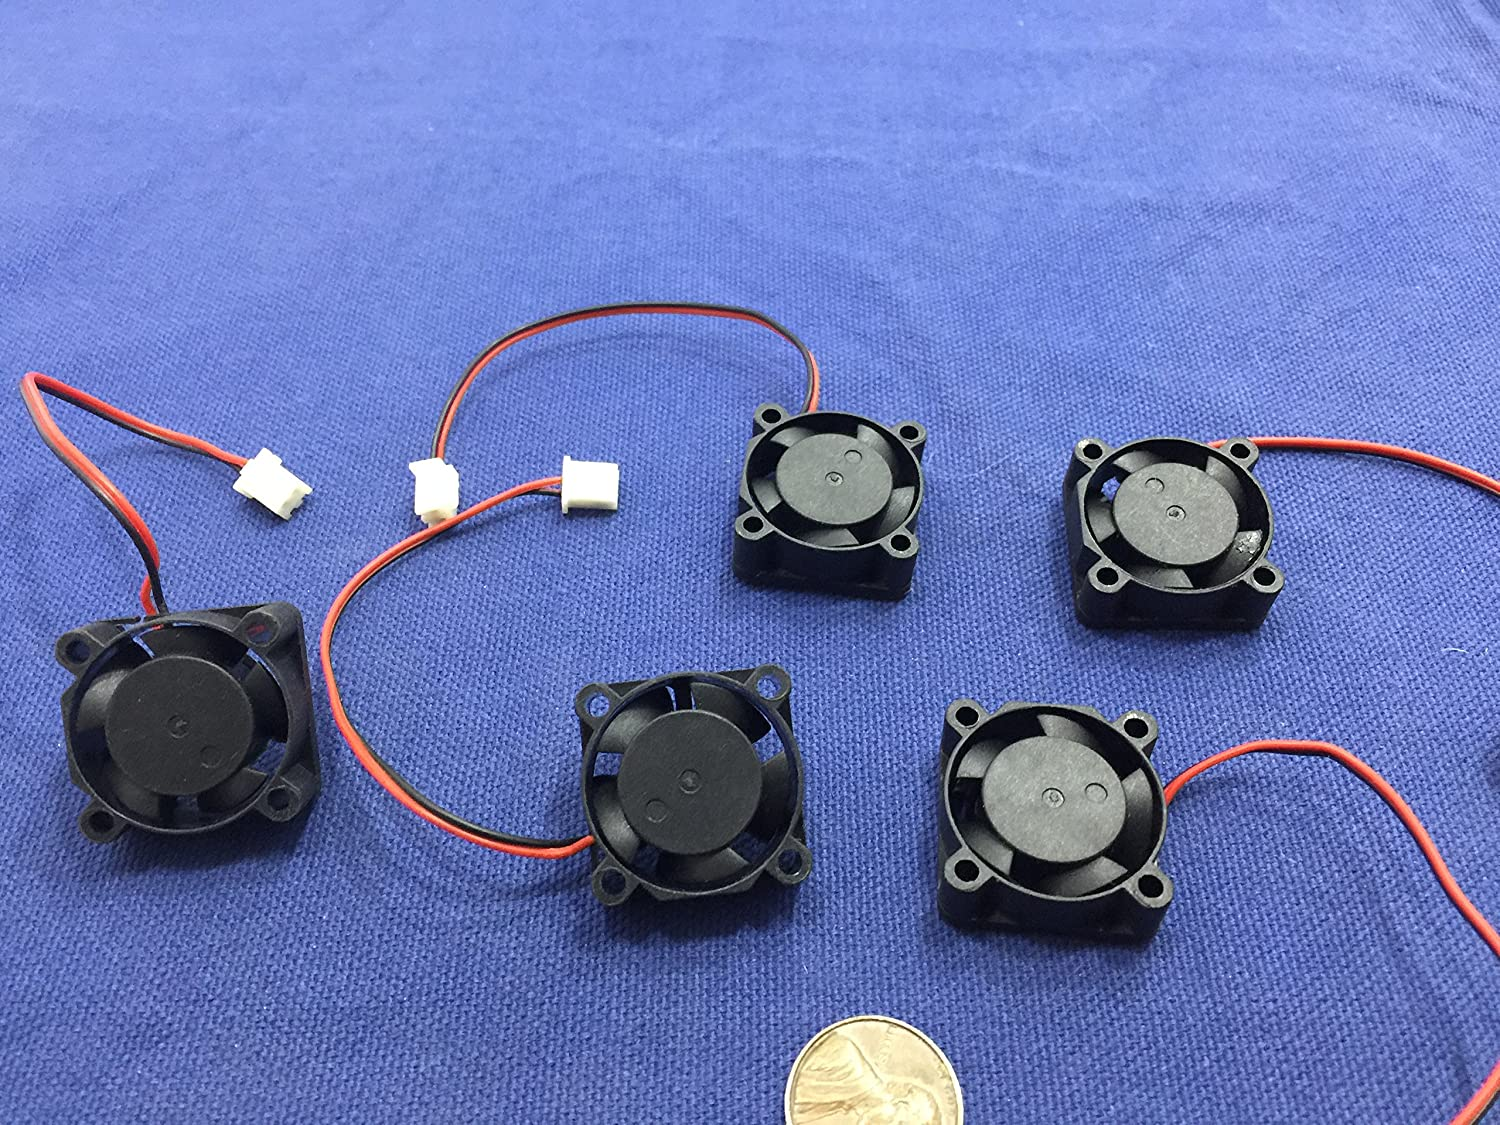 6 Pieces 24v Fan 25mm x 25 x 10 Brushless Cooling  small micro Flow CFM B18